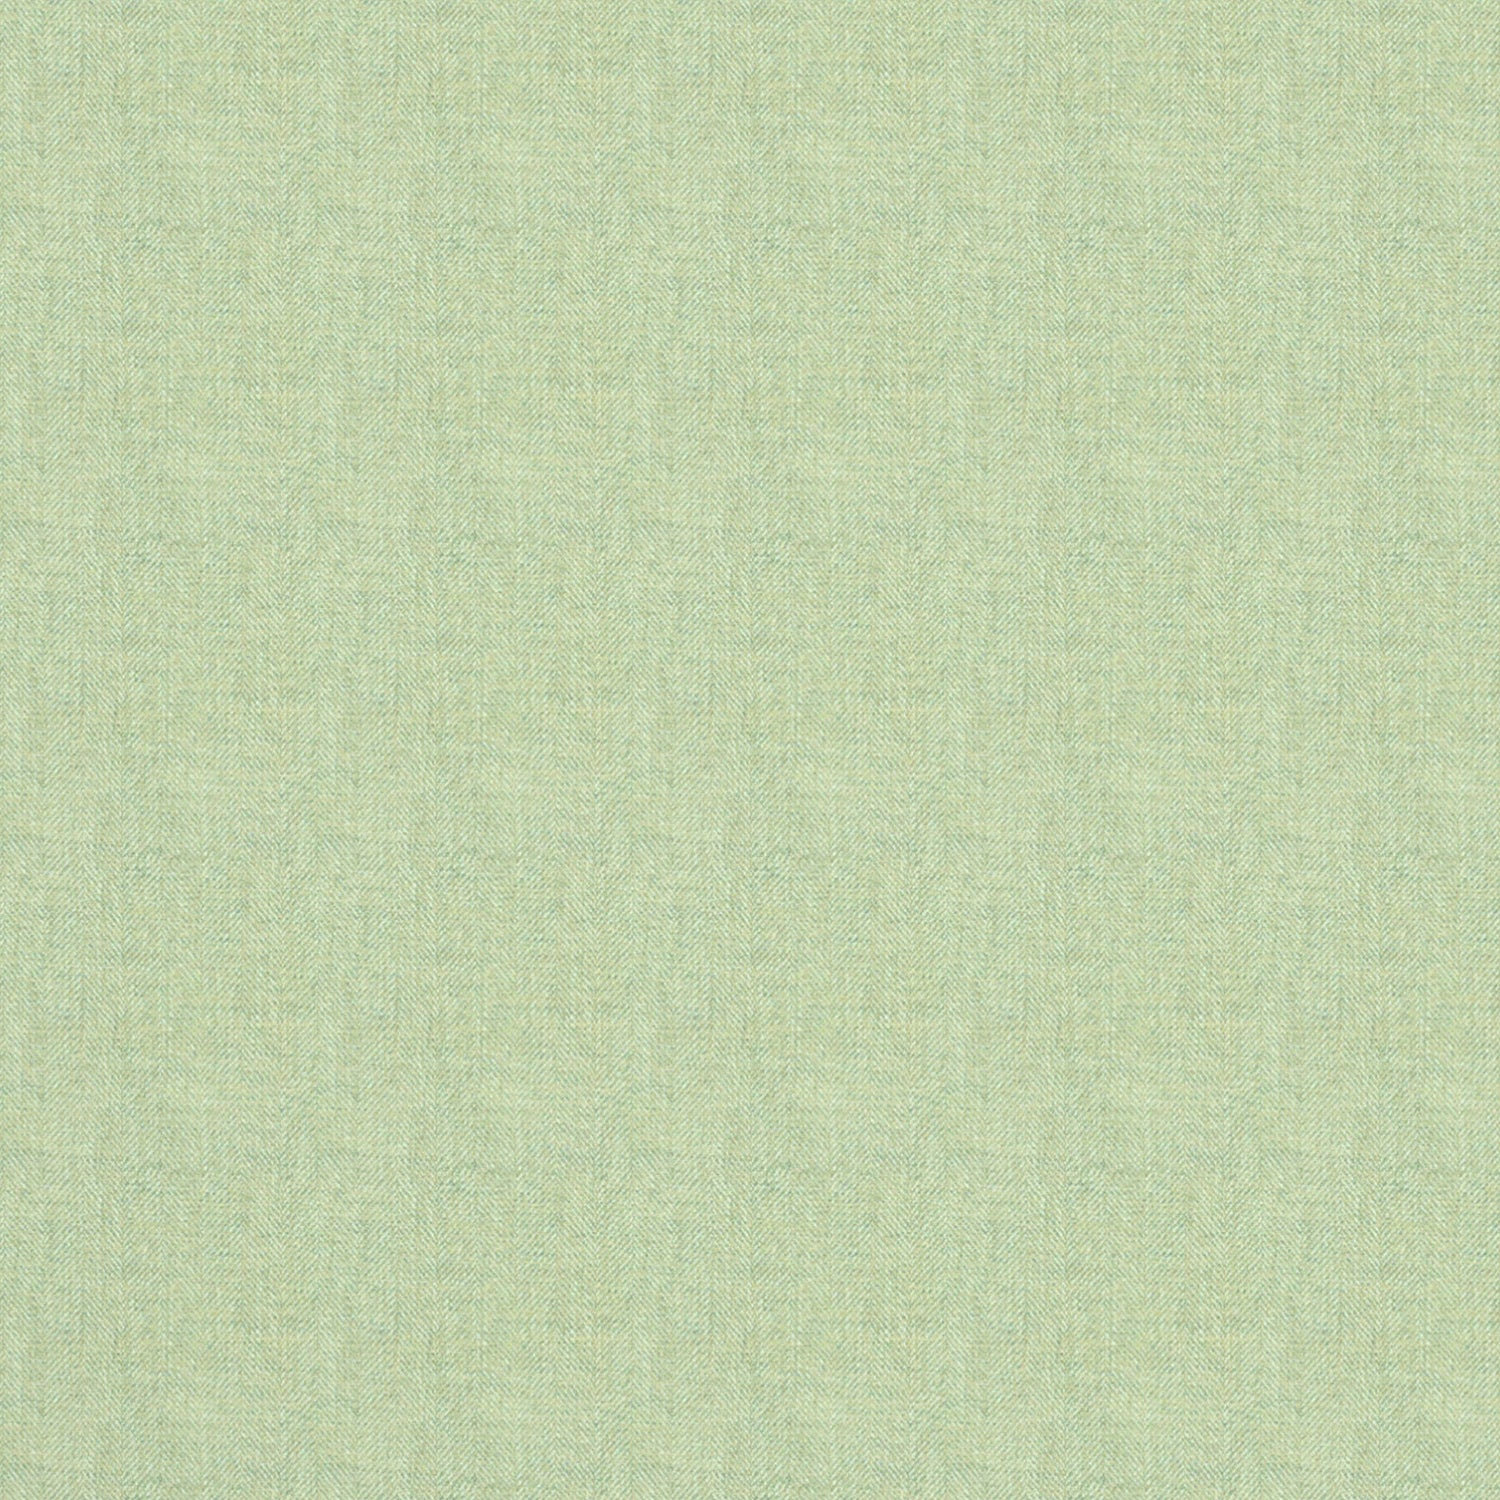 Fabric swatch of a mint Scottish wool herringbone fabric for curtains and upholstery